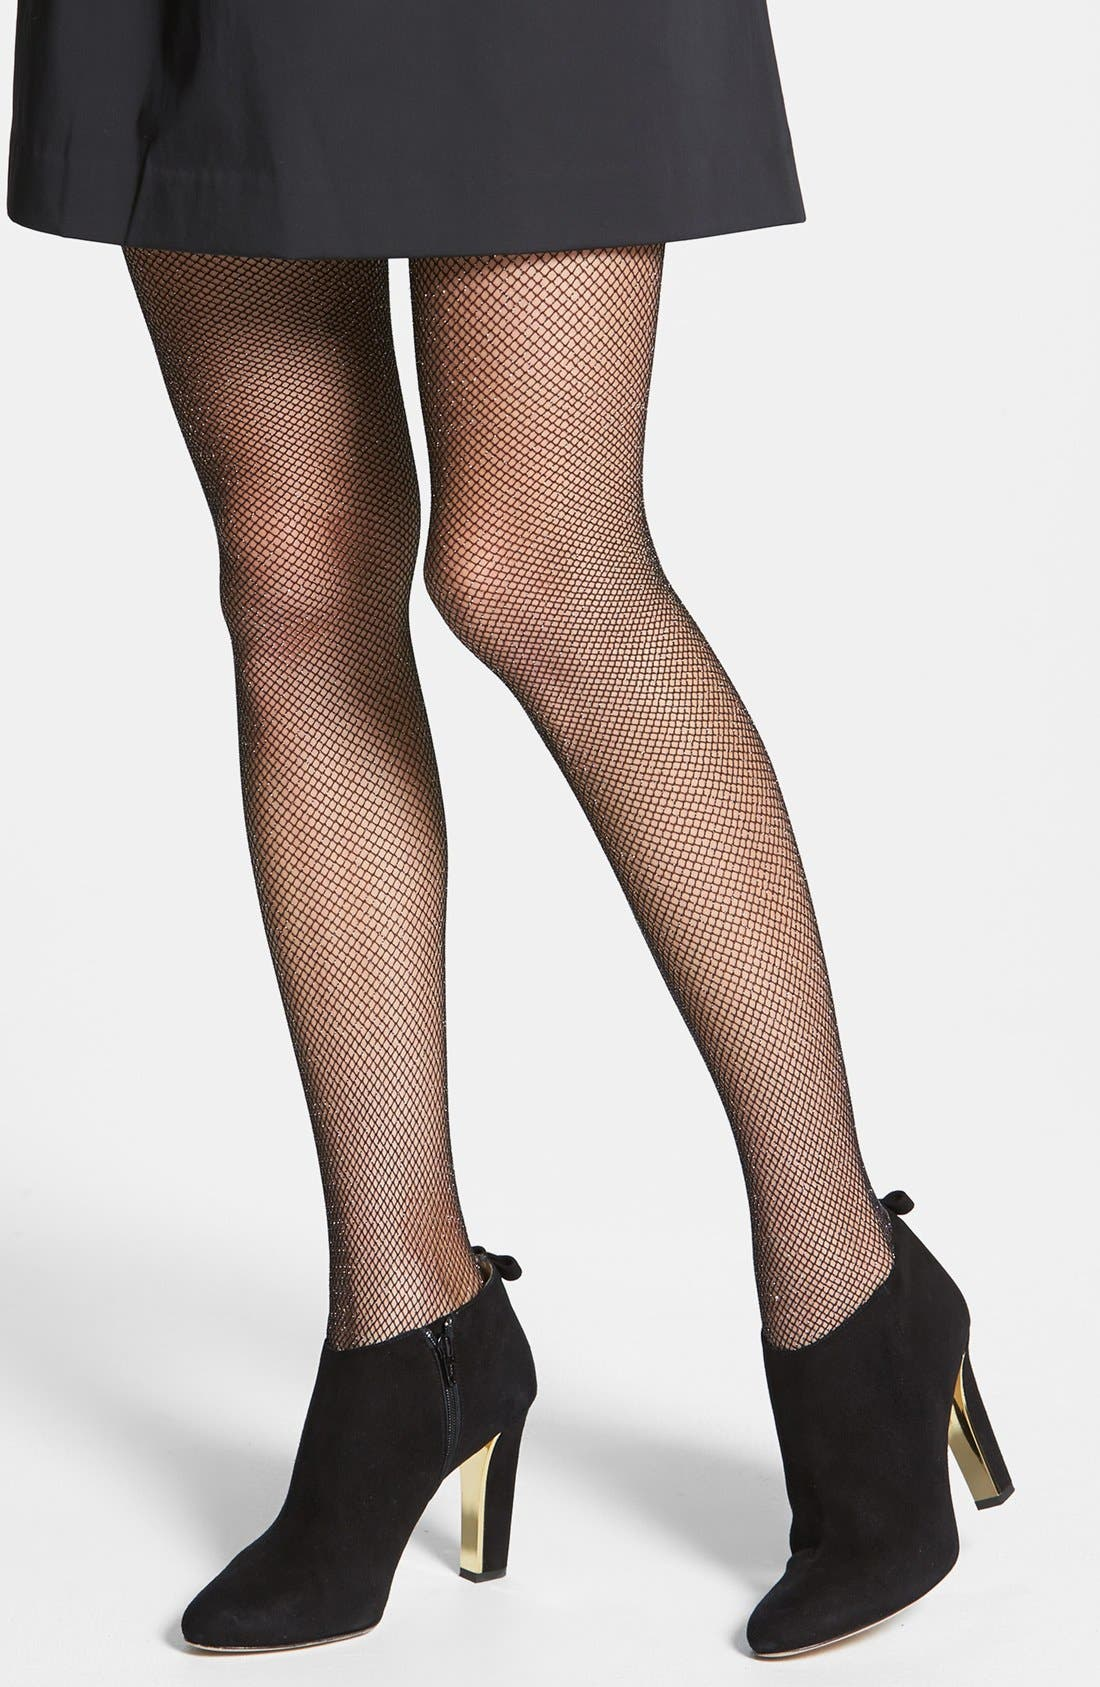 Main Image - kate spade new york 'sparkle' fishnet stockings